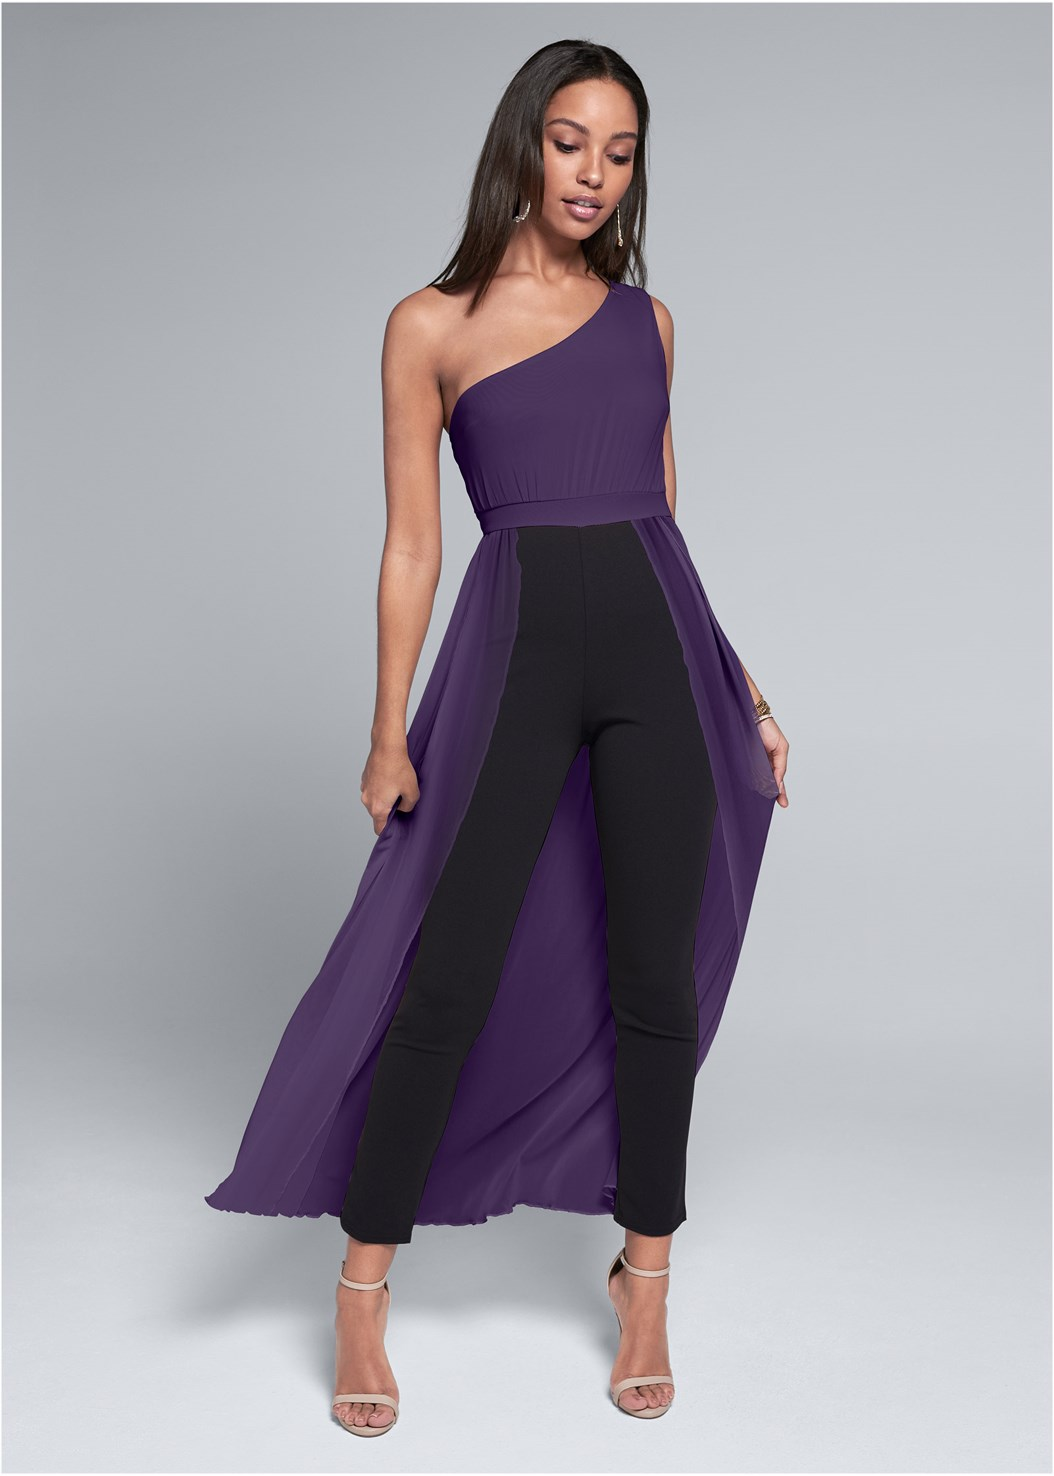 One Shoulder Jumpsuit,Kissable Convertible Bra,Ankle Strap Heels